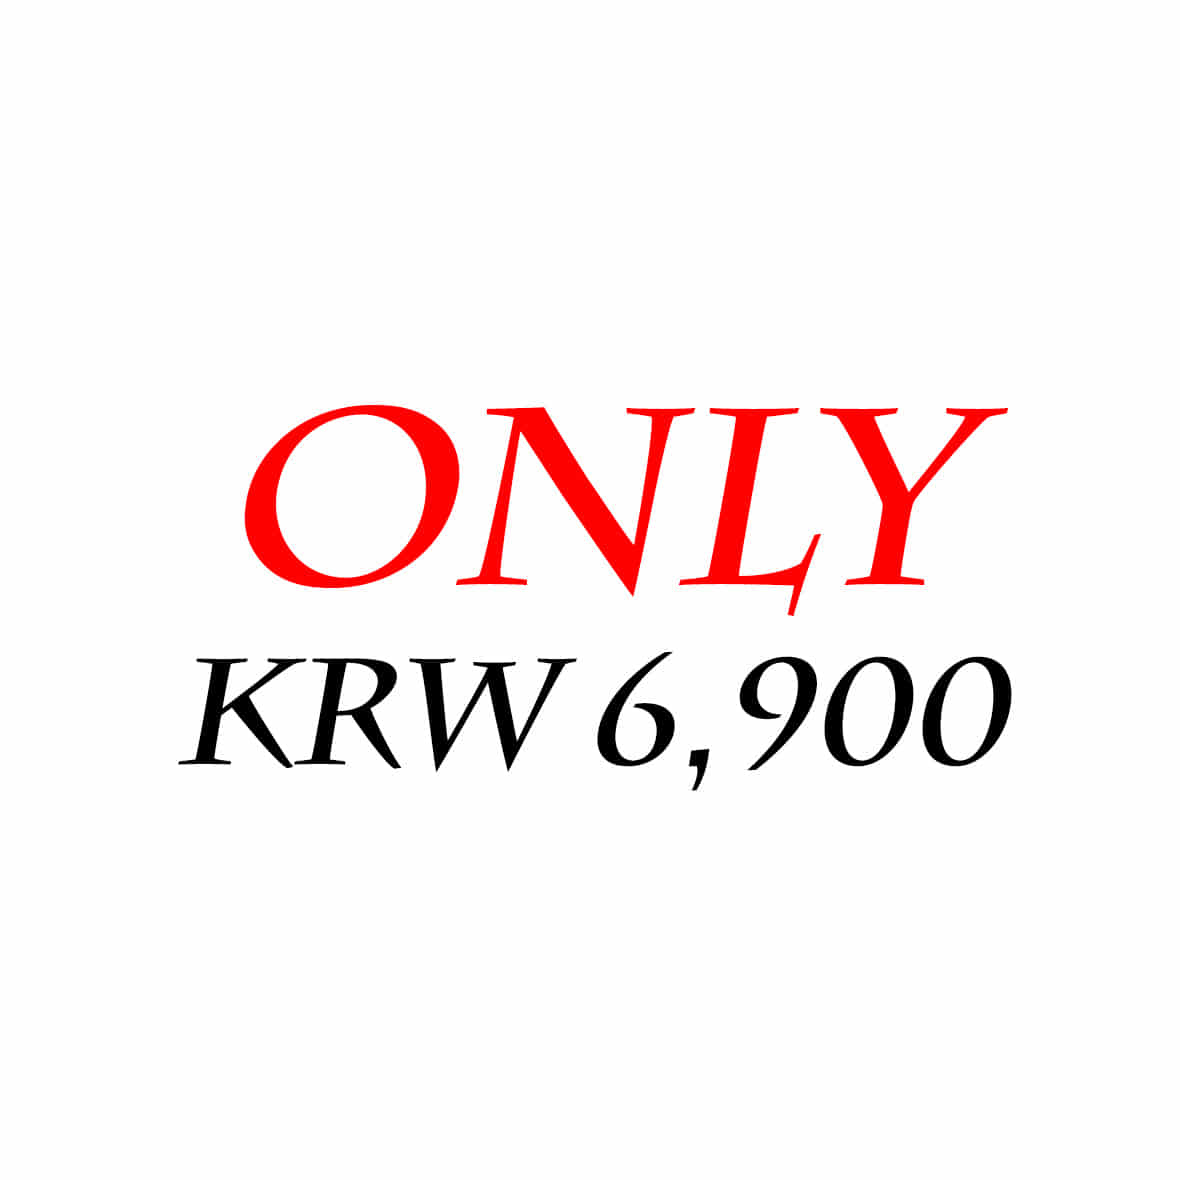 KRW 6900 DAY -당일출발-